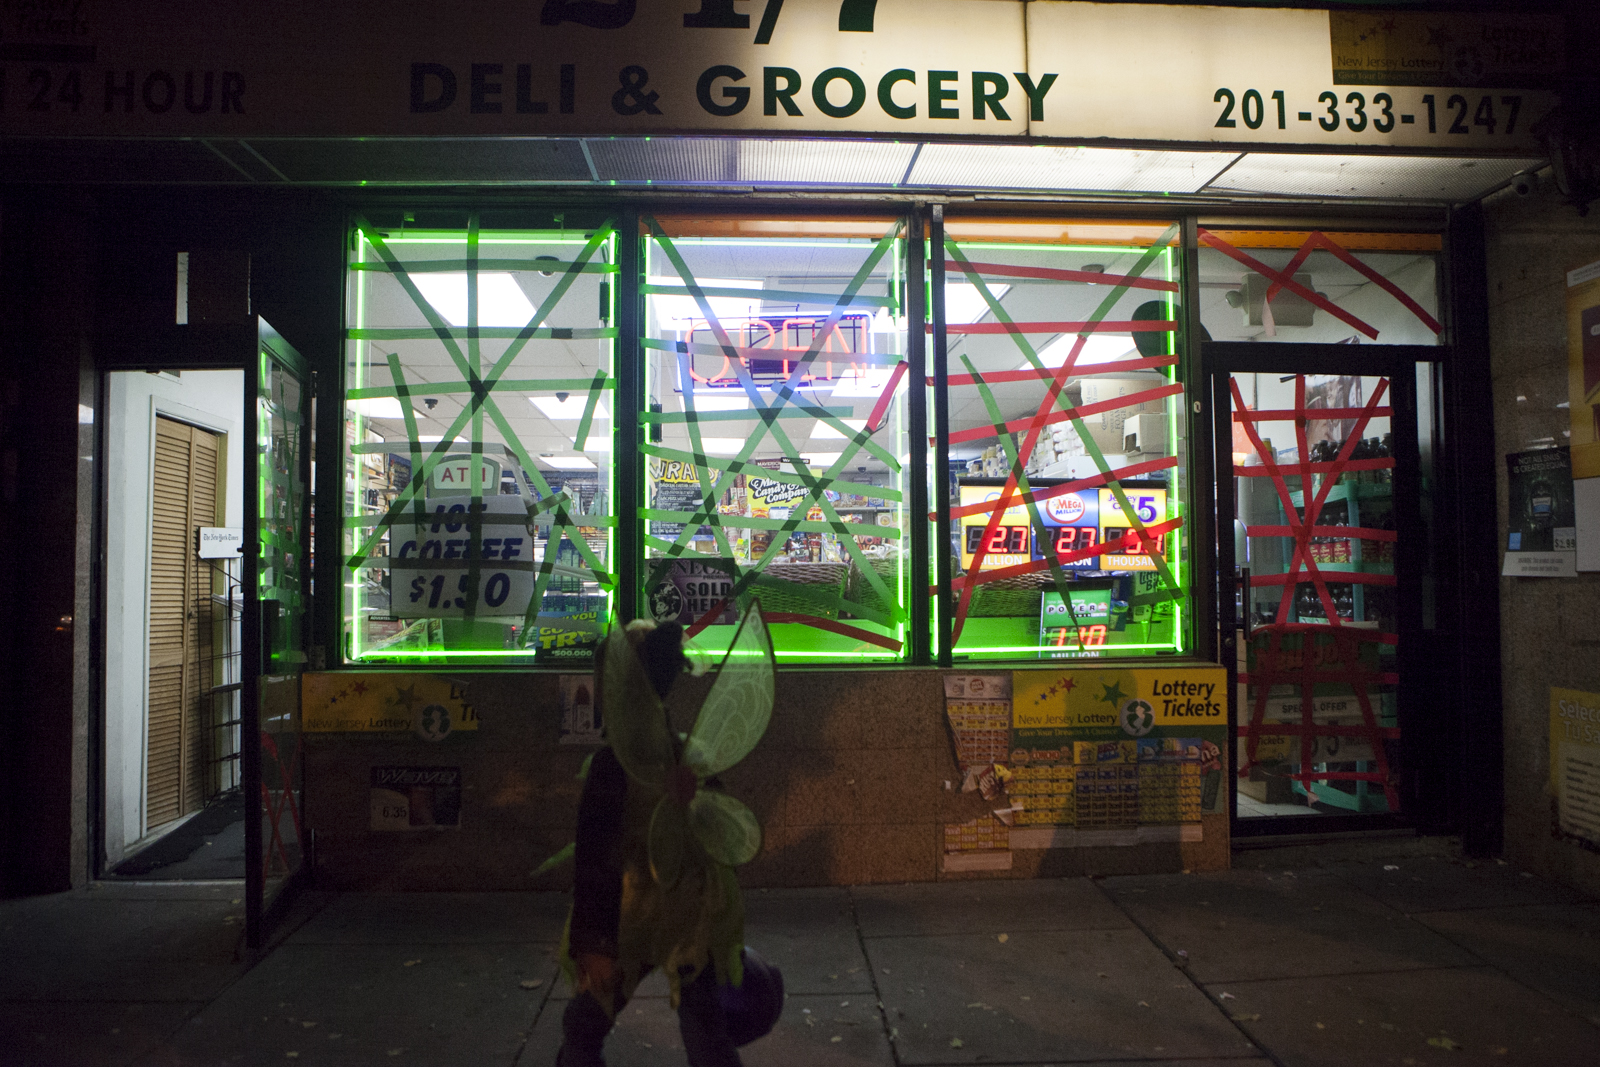 Some businesses are open, but their windows are taped up and mostly taking cash only.